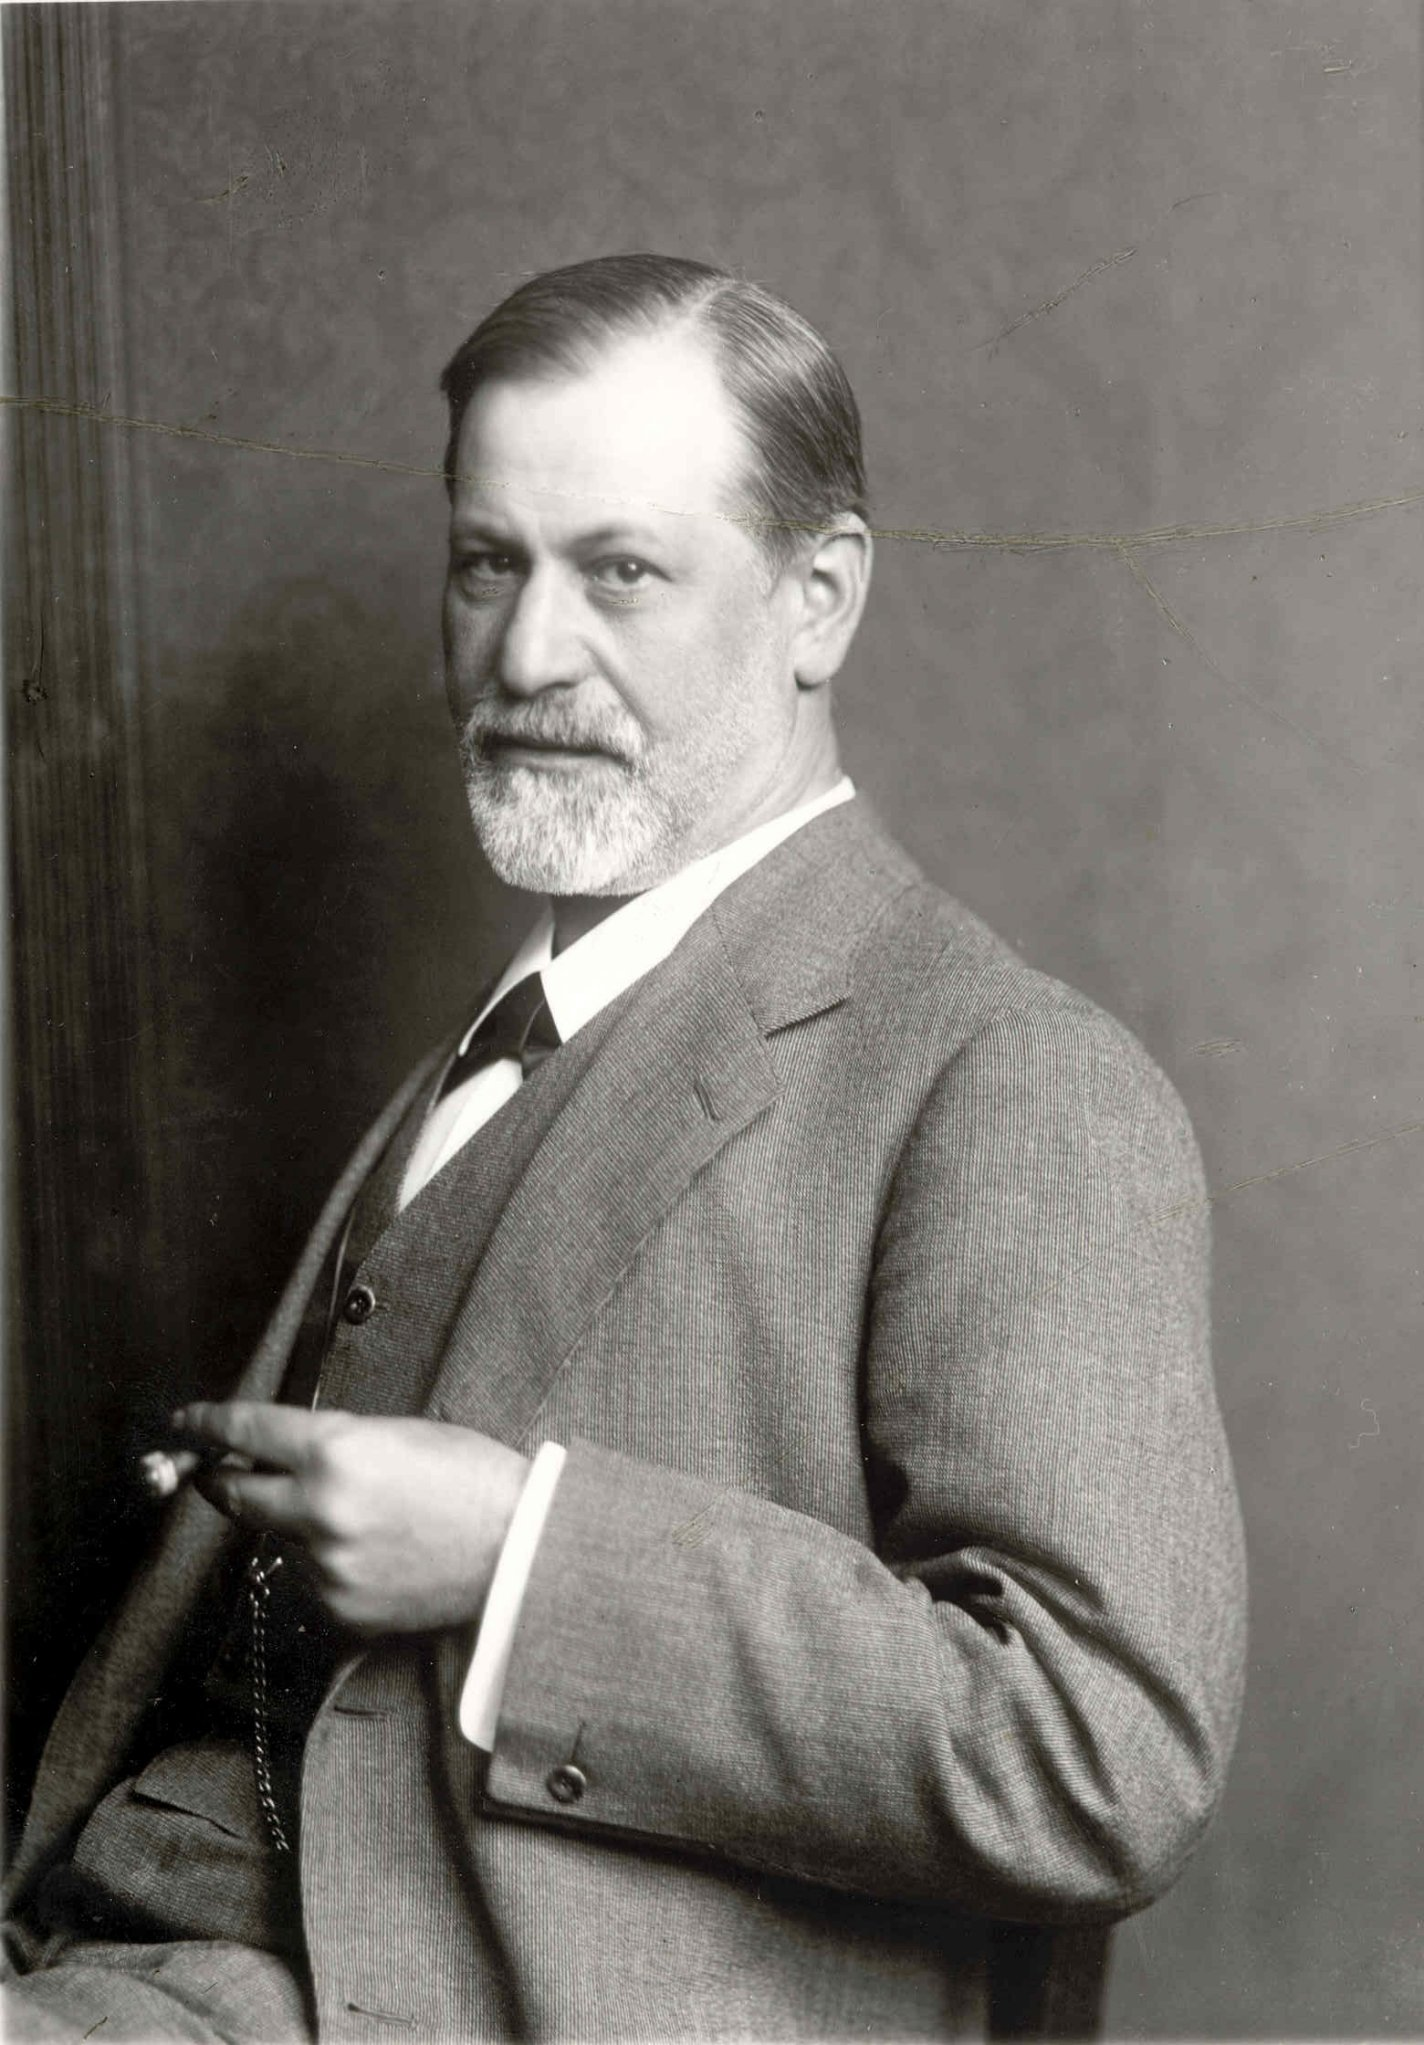 an analysis of the freuds research on the subconscious This chapter outlines freud's conceptions of the mind and focuses on his  understanding of consciousness and perception and of the unconscious mind.